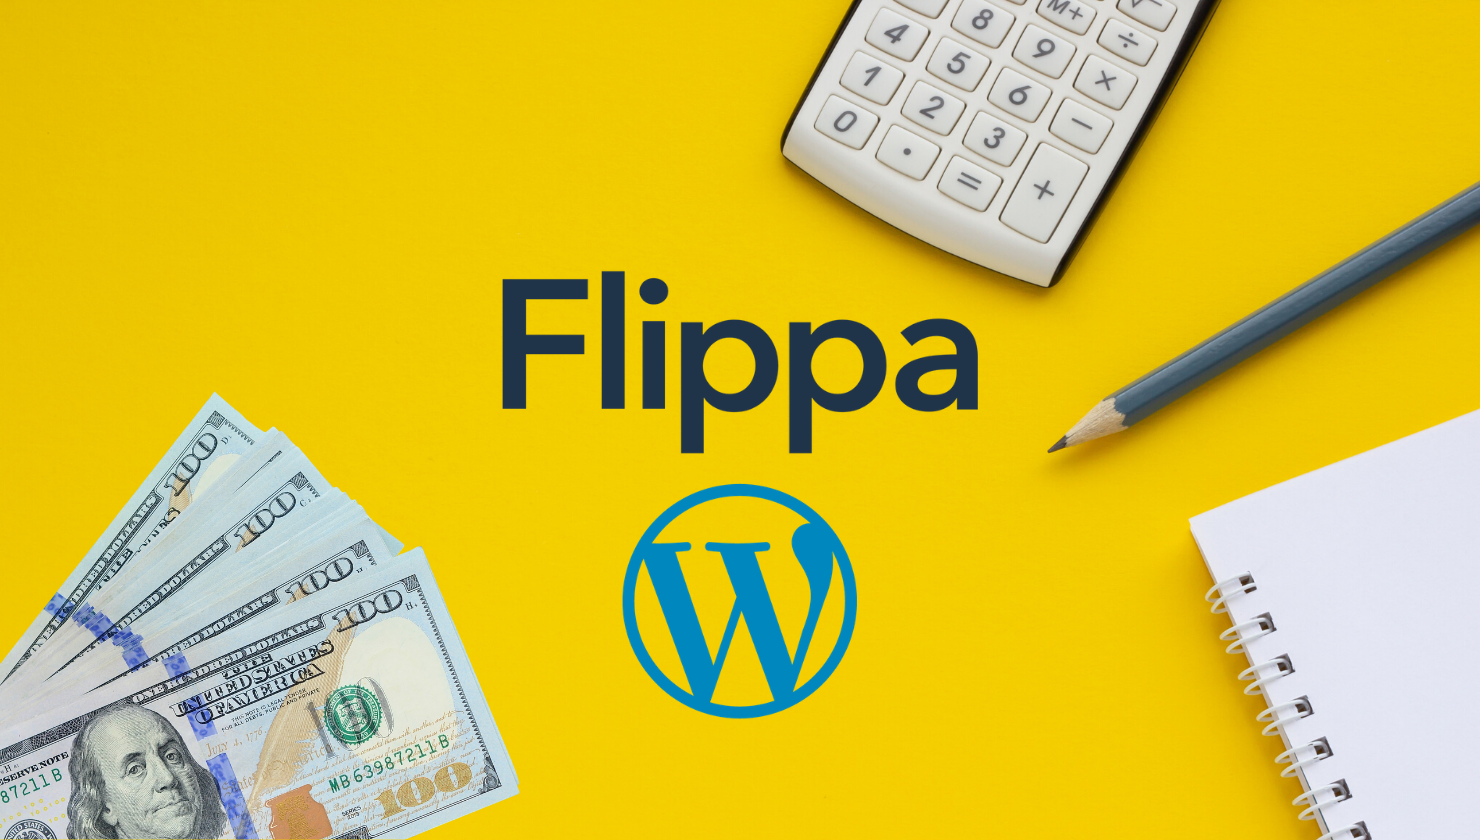 Flippa Launches a FREE Wordpress Plugin - so you can get real-time valuations for your online business